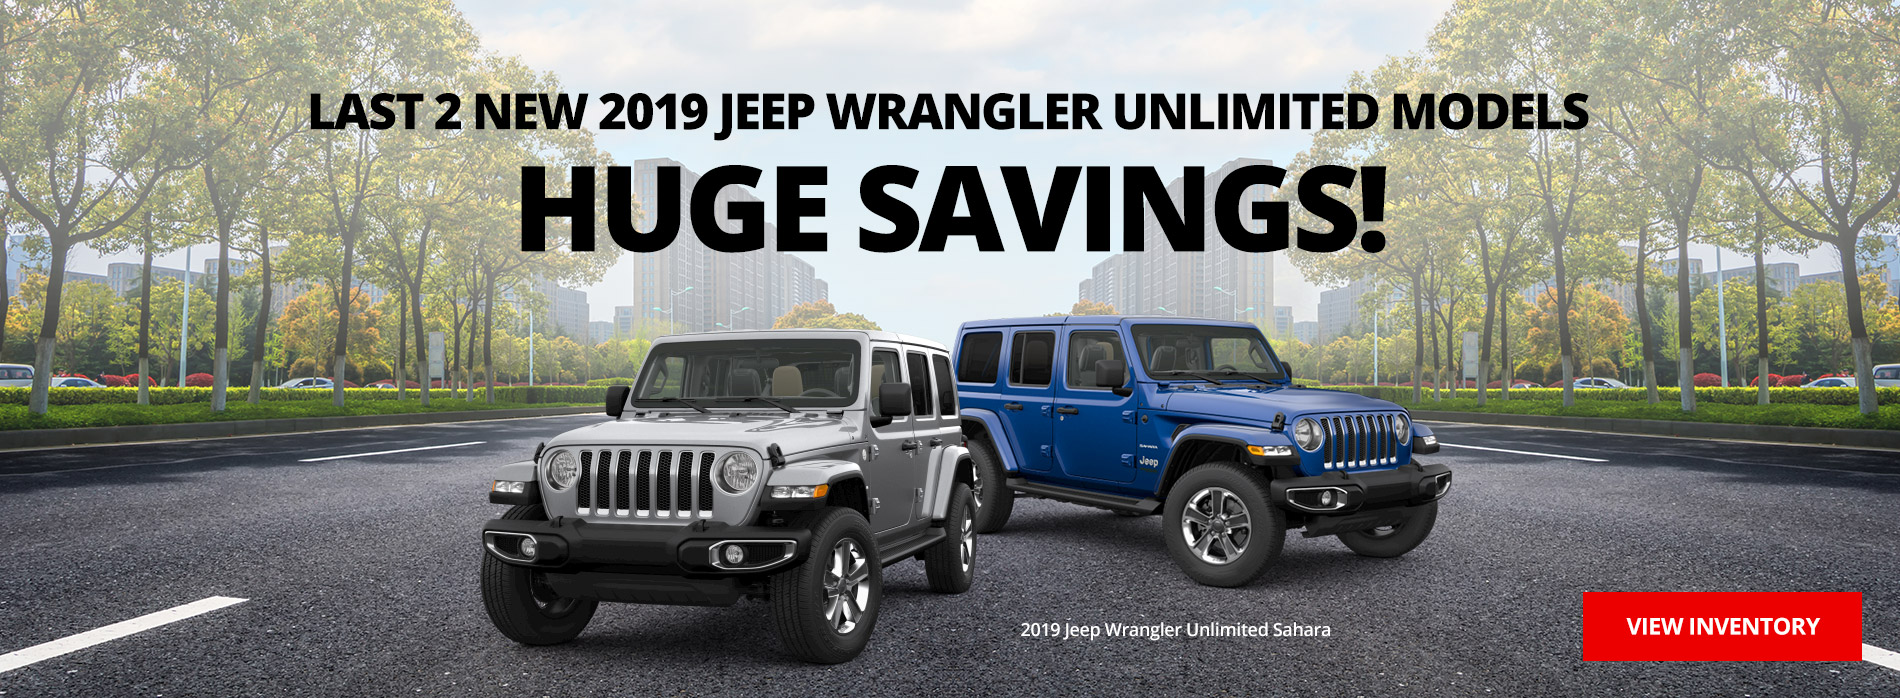 Last 2 New 2019 Jeep Wrangler Unlimited Models